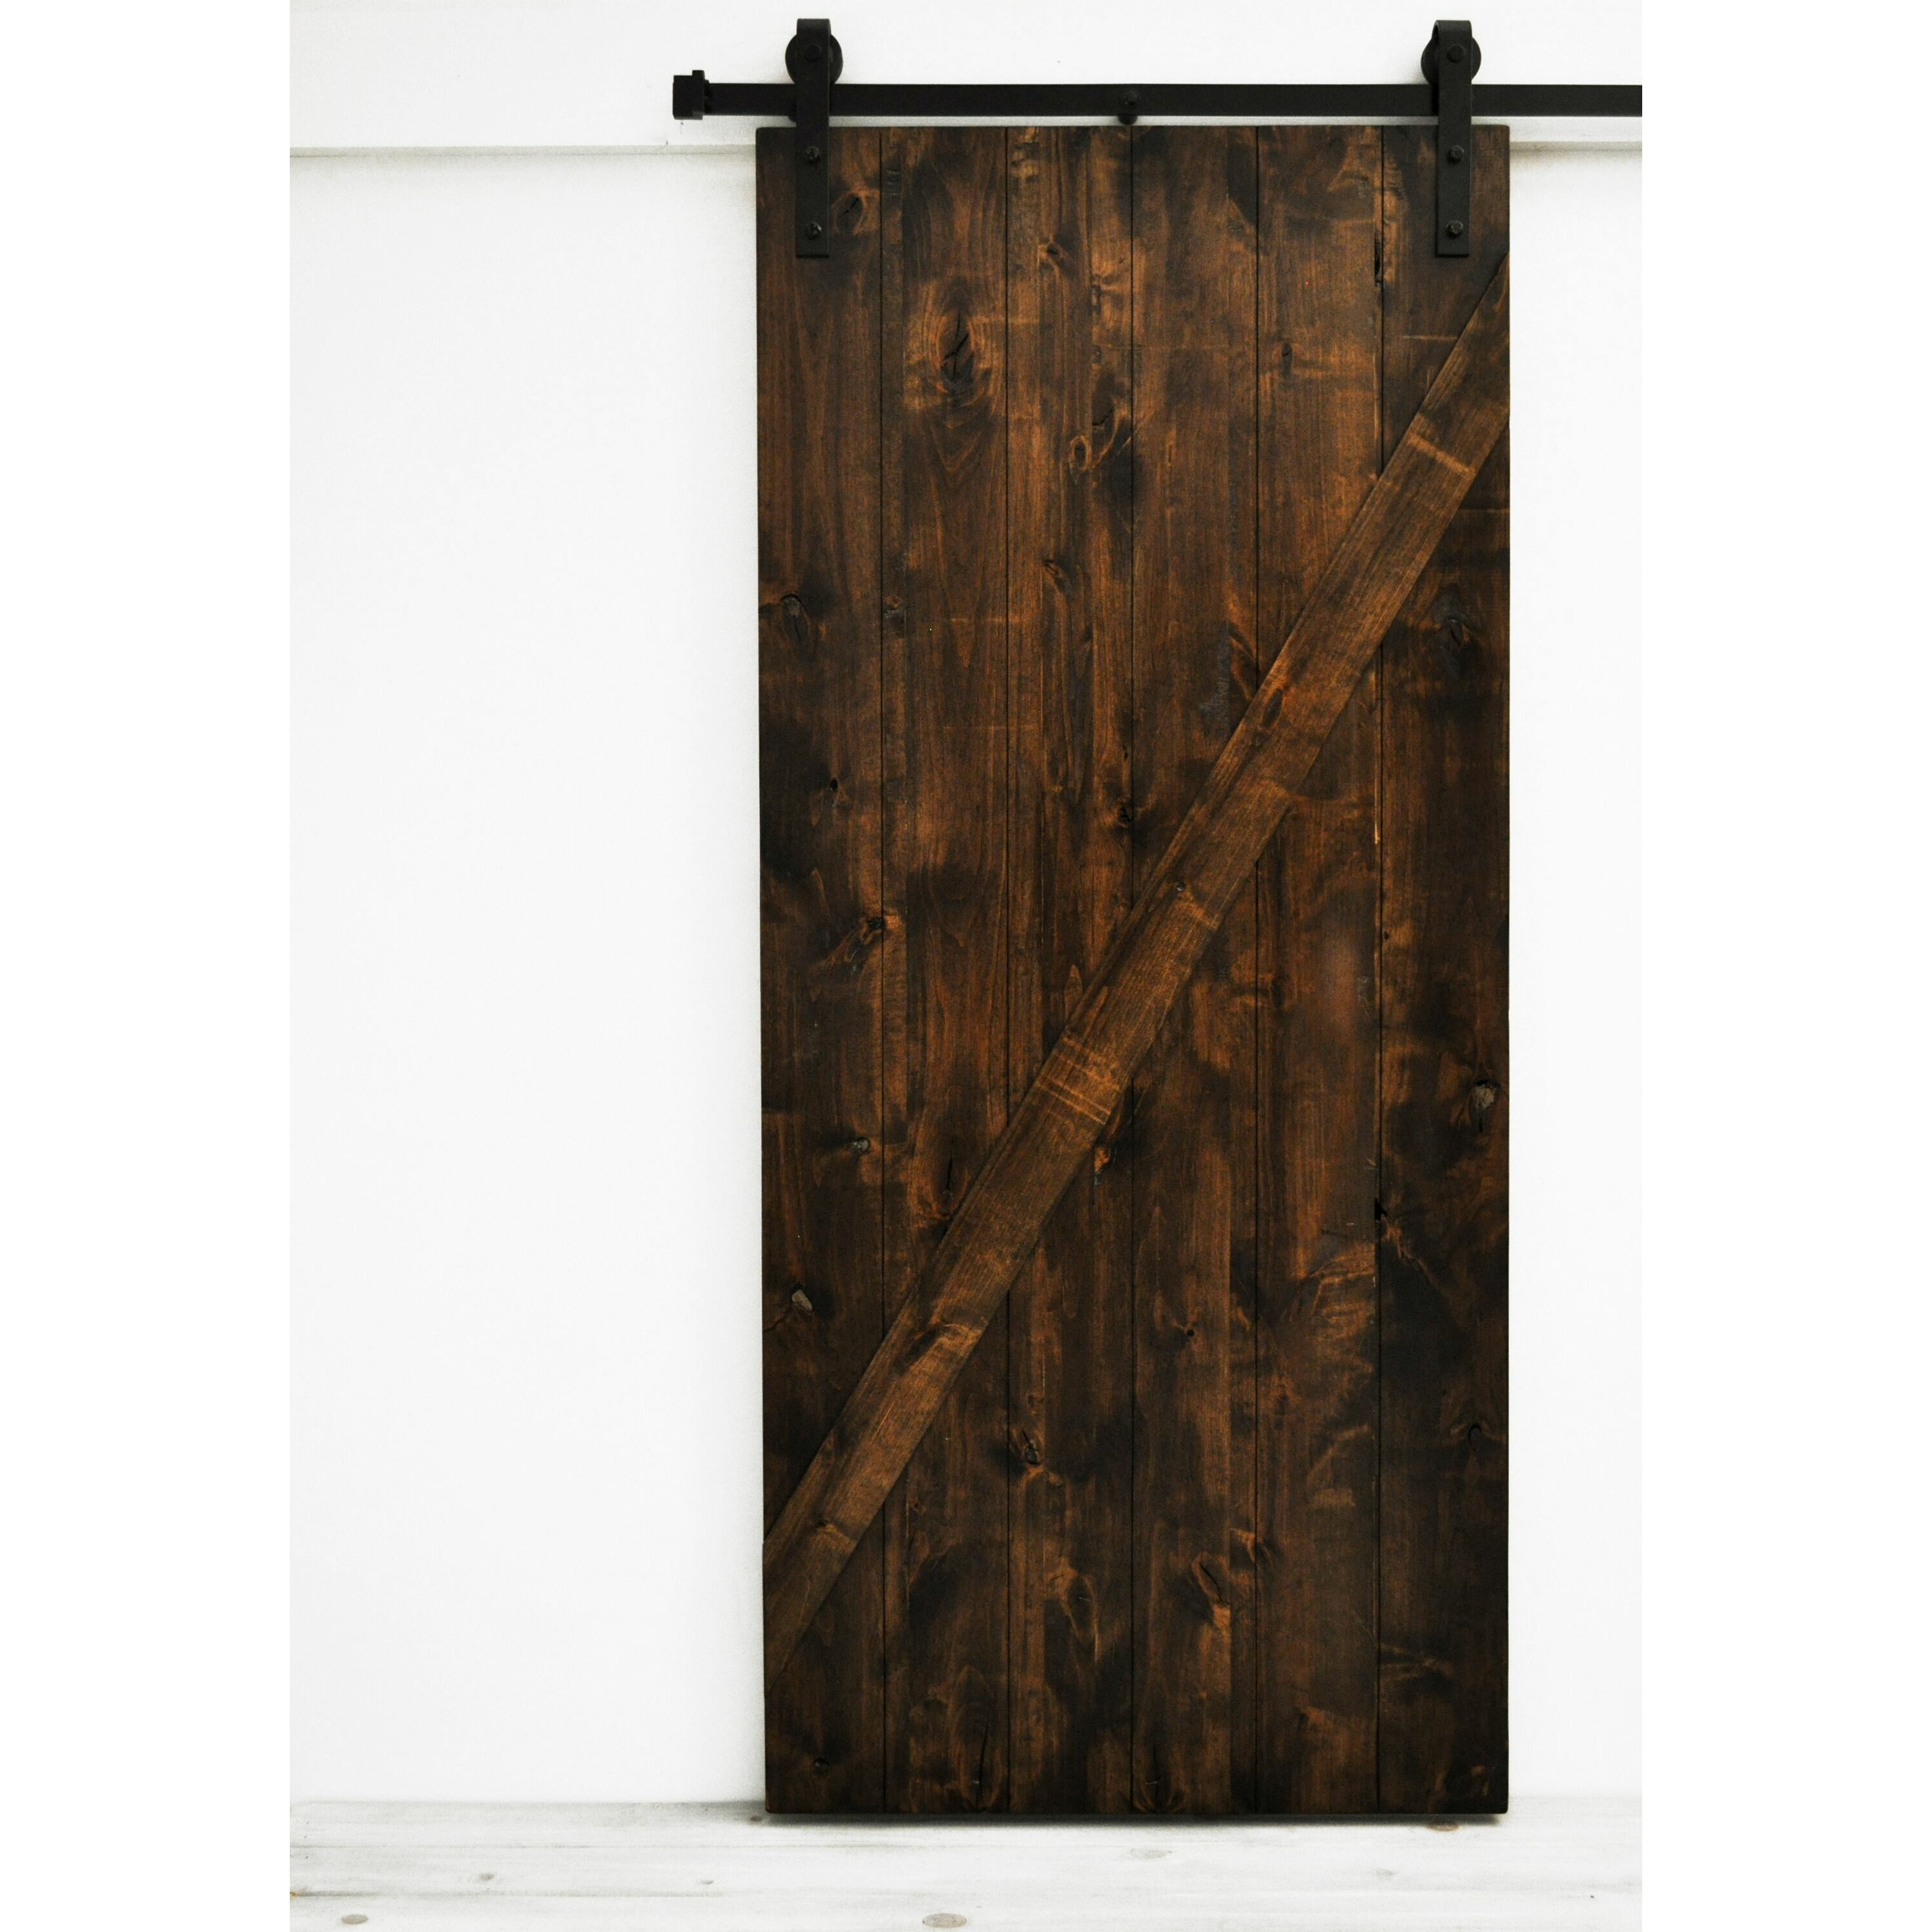 Wonderful image of Dogberry Collections Mod Z Wood 1 Panel Interior Barn Door Wayfair with #9C612F color and 3000x3000 pixels